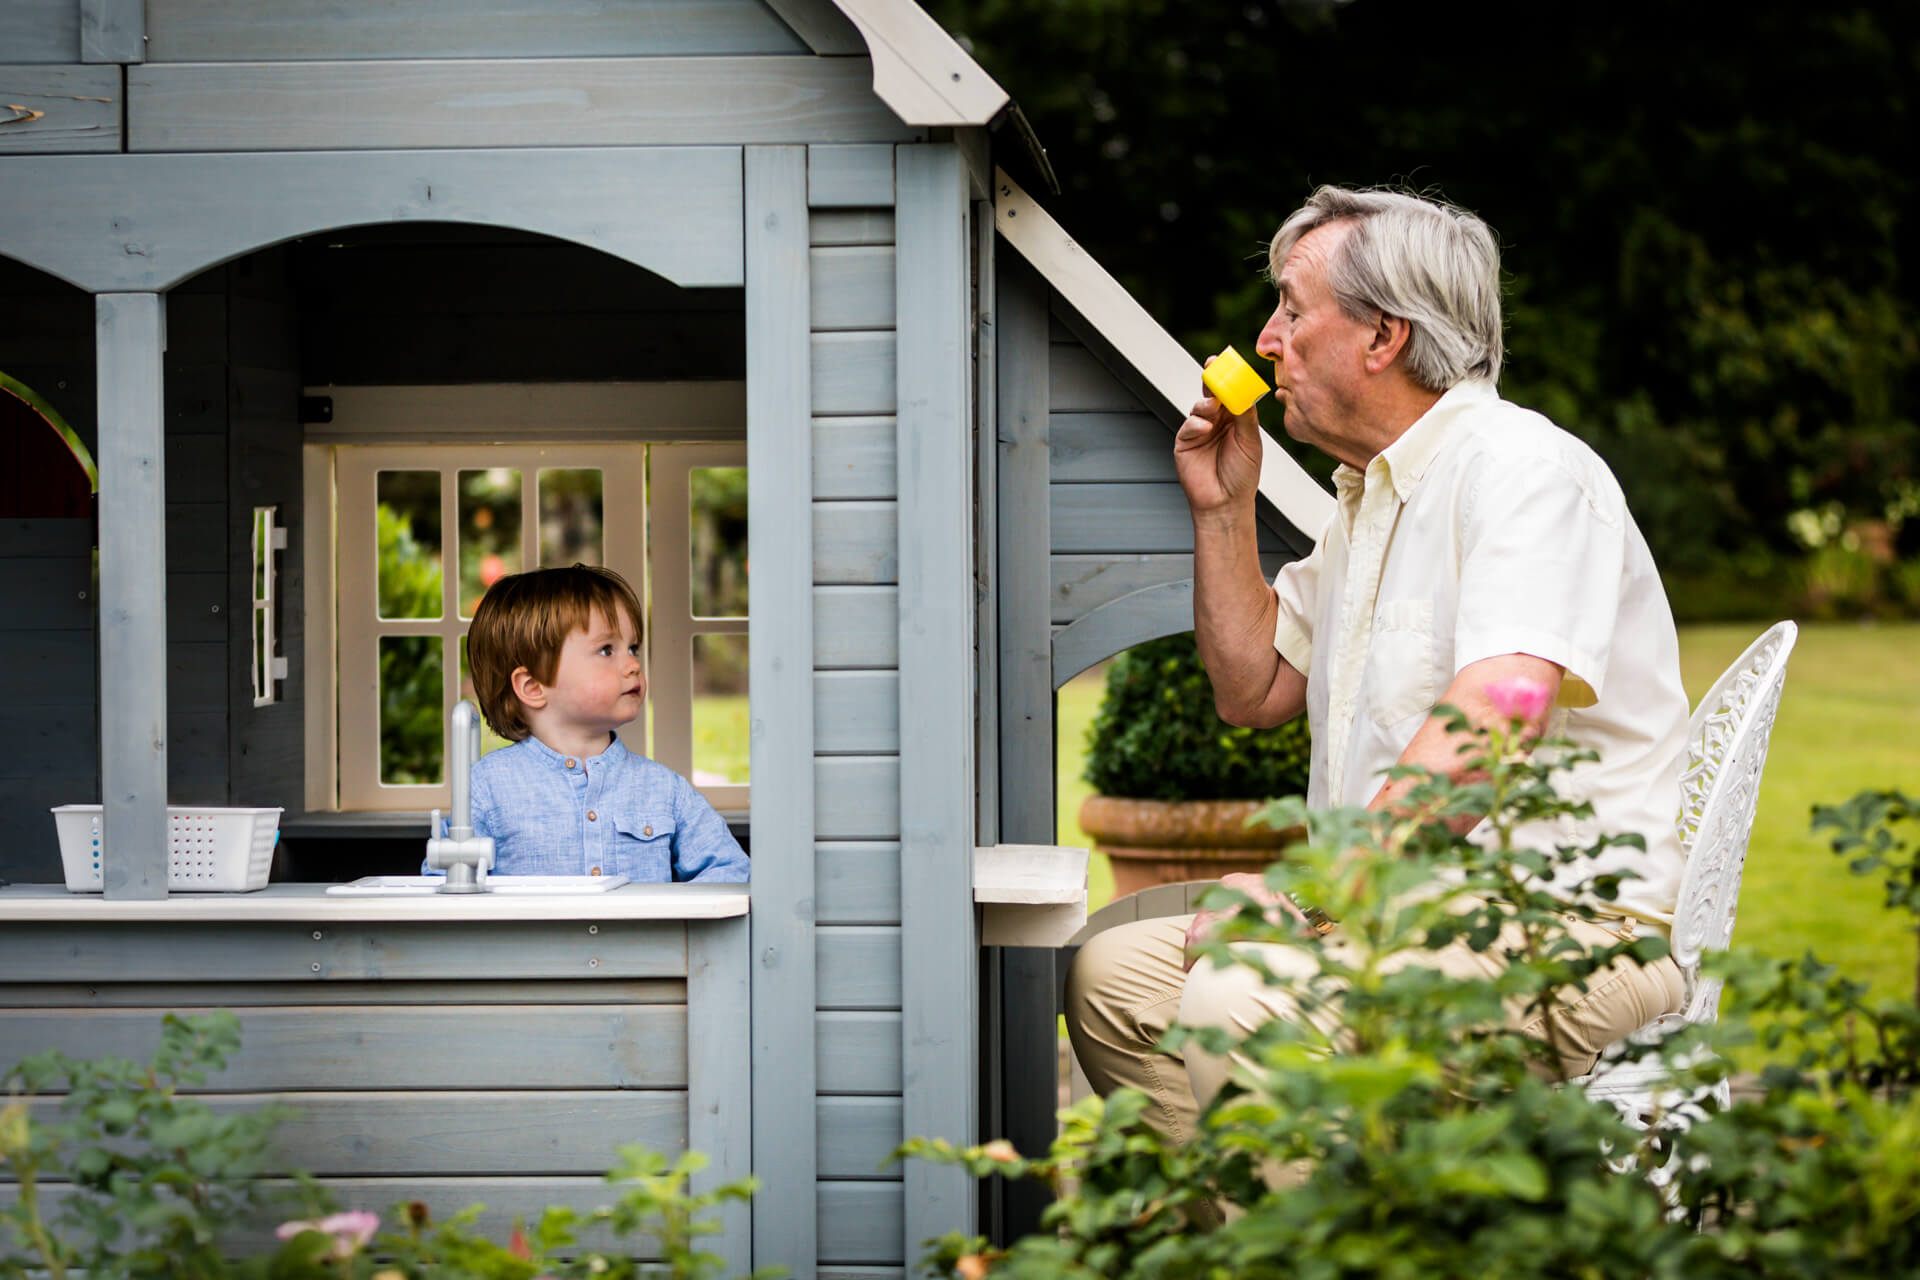 small boy in his play house offering a cup of tea to his grandad